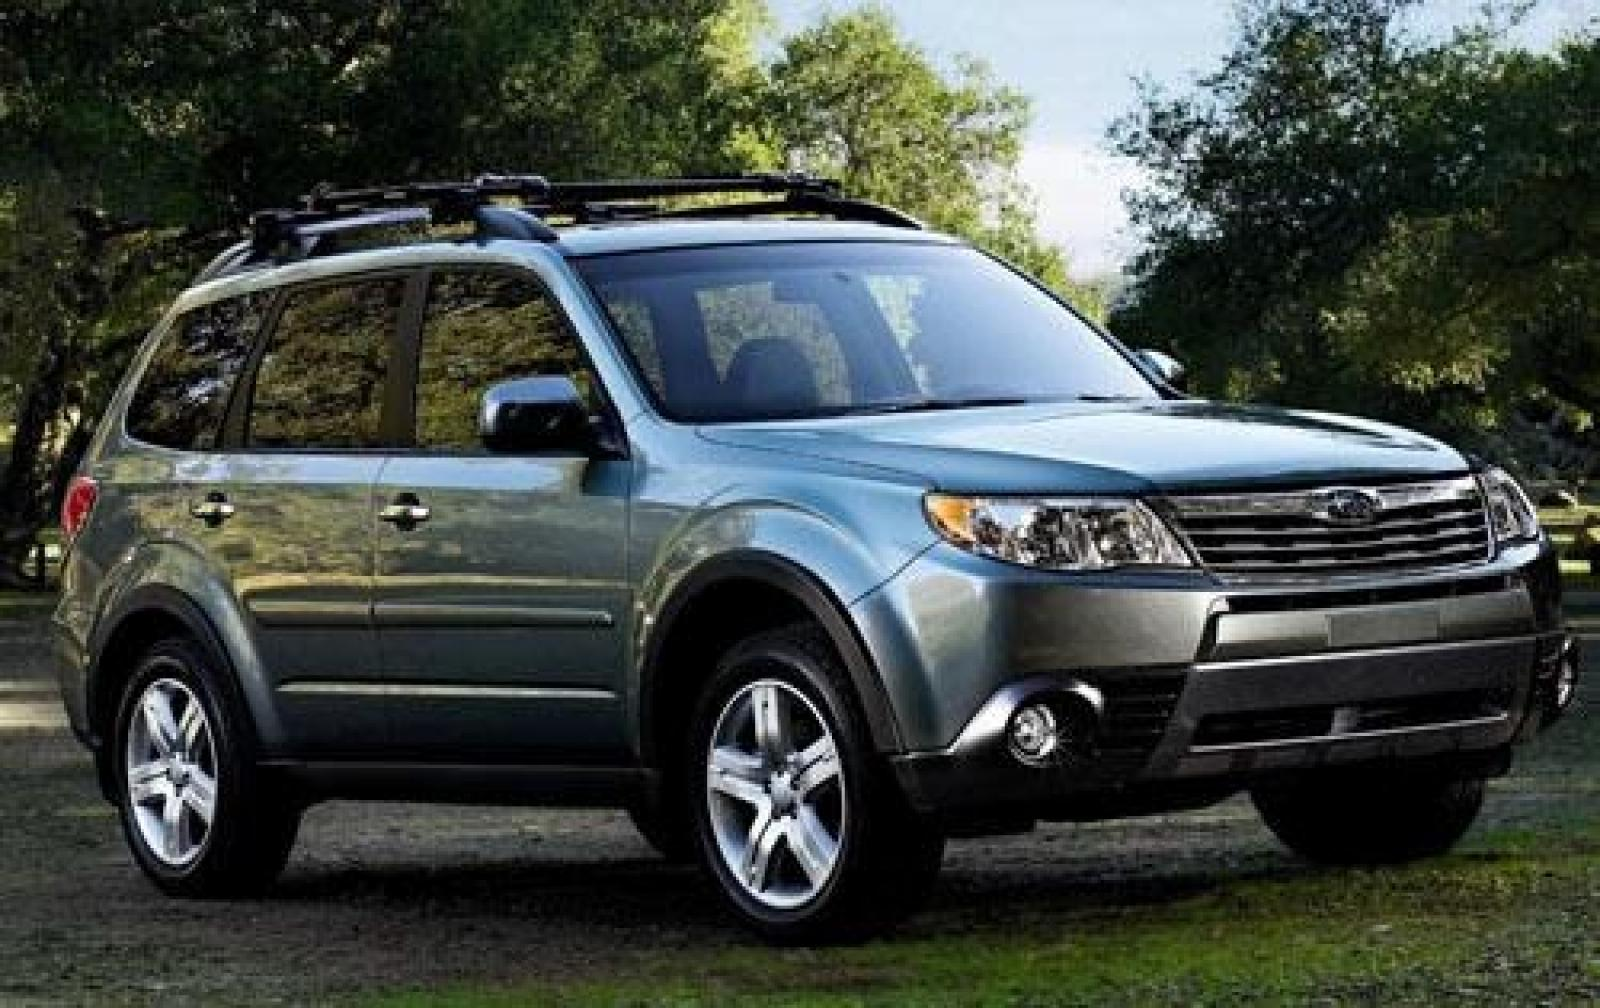 2012 Subaru Forester - Information and photos - ZombieDrive